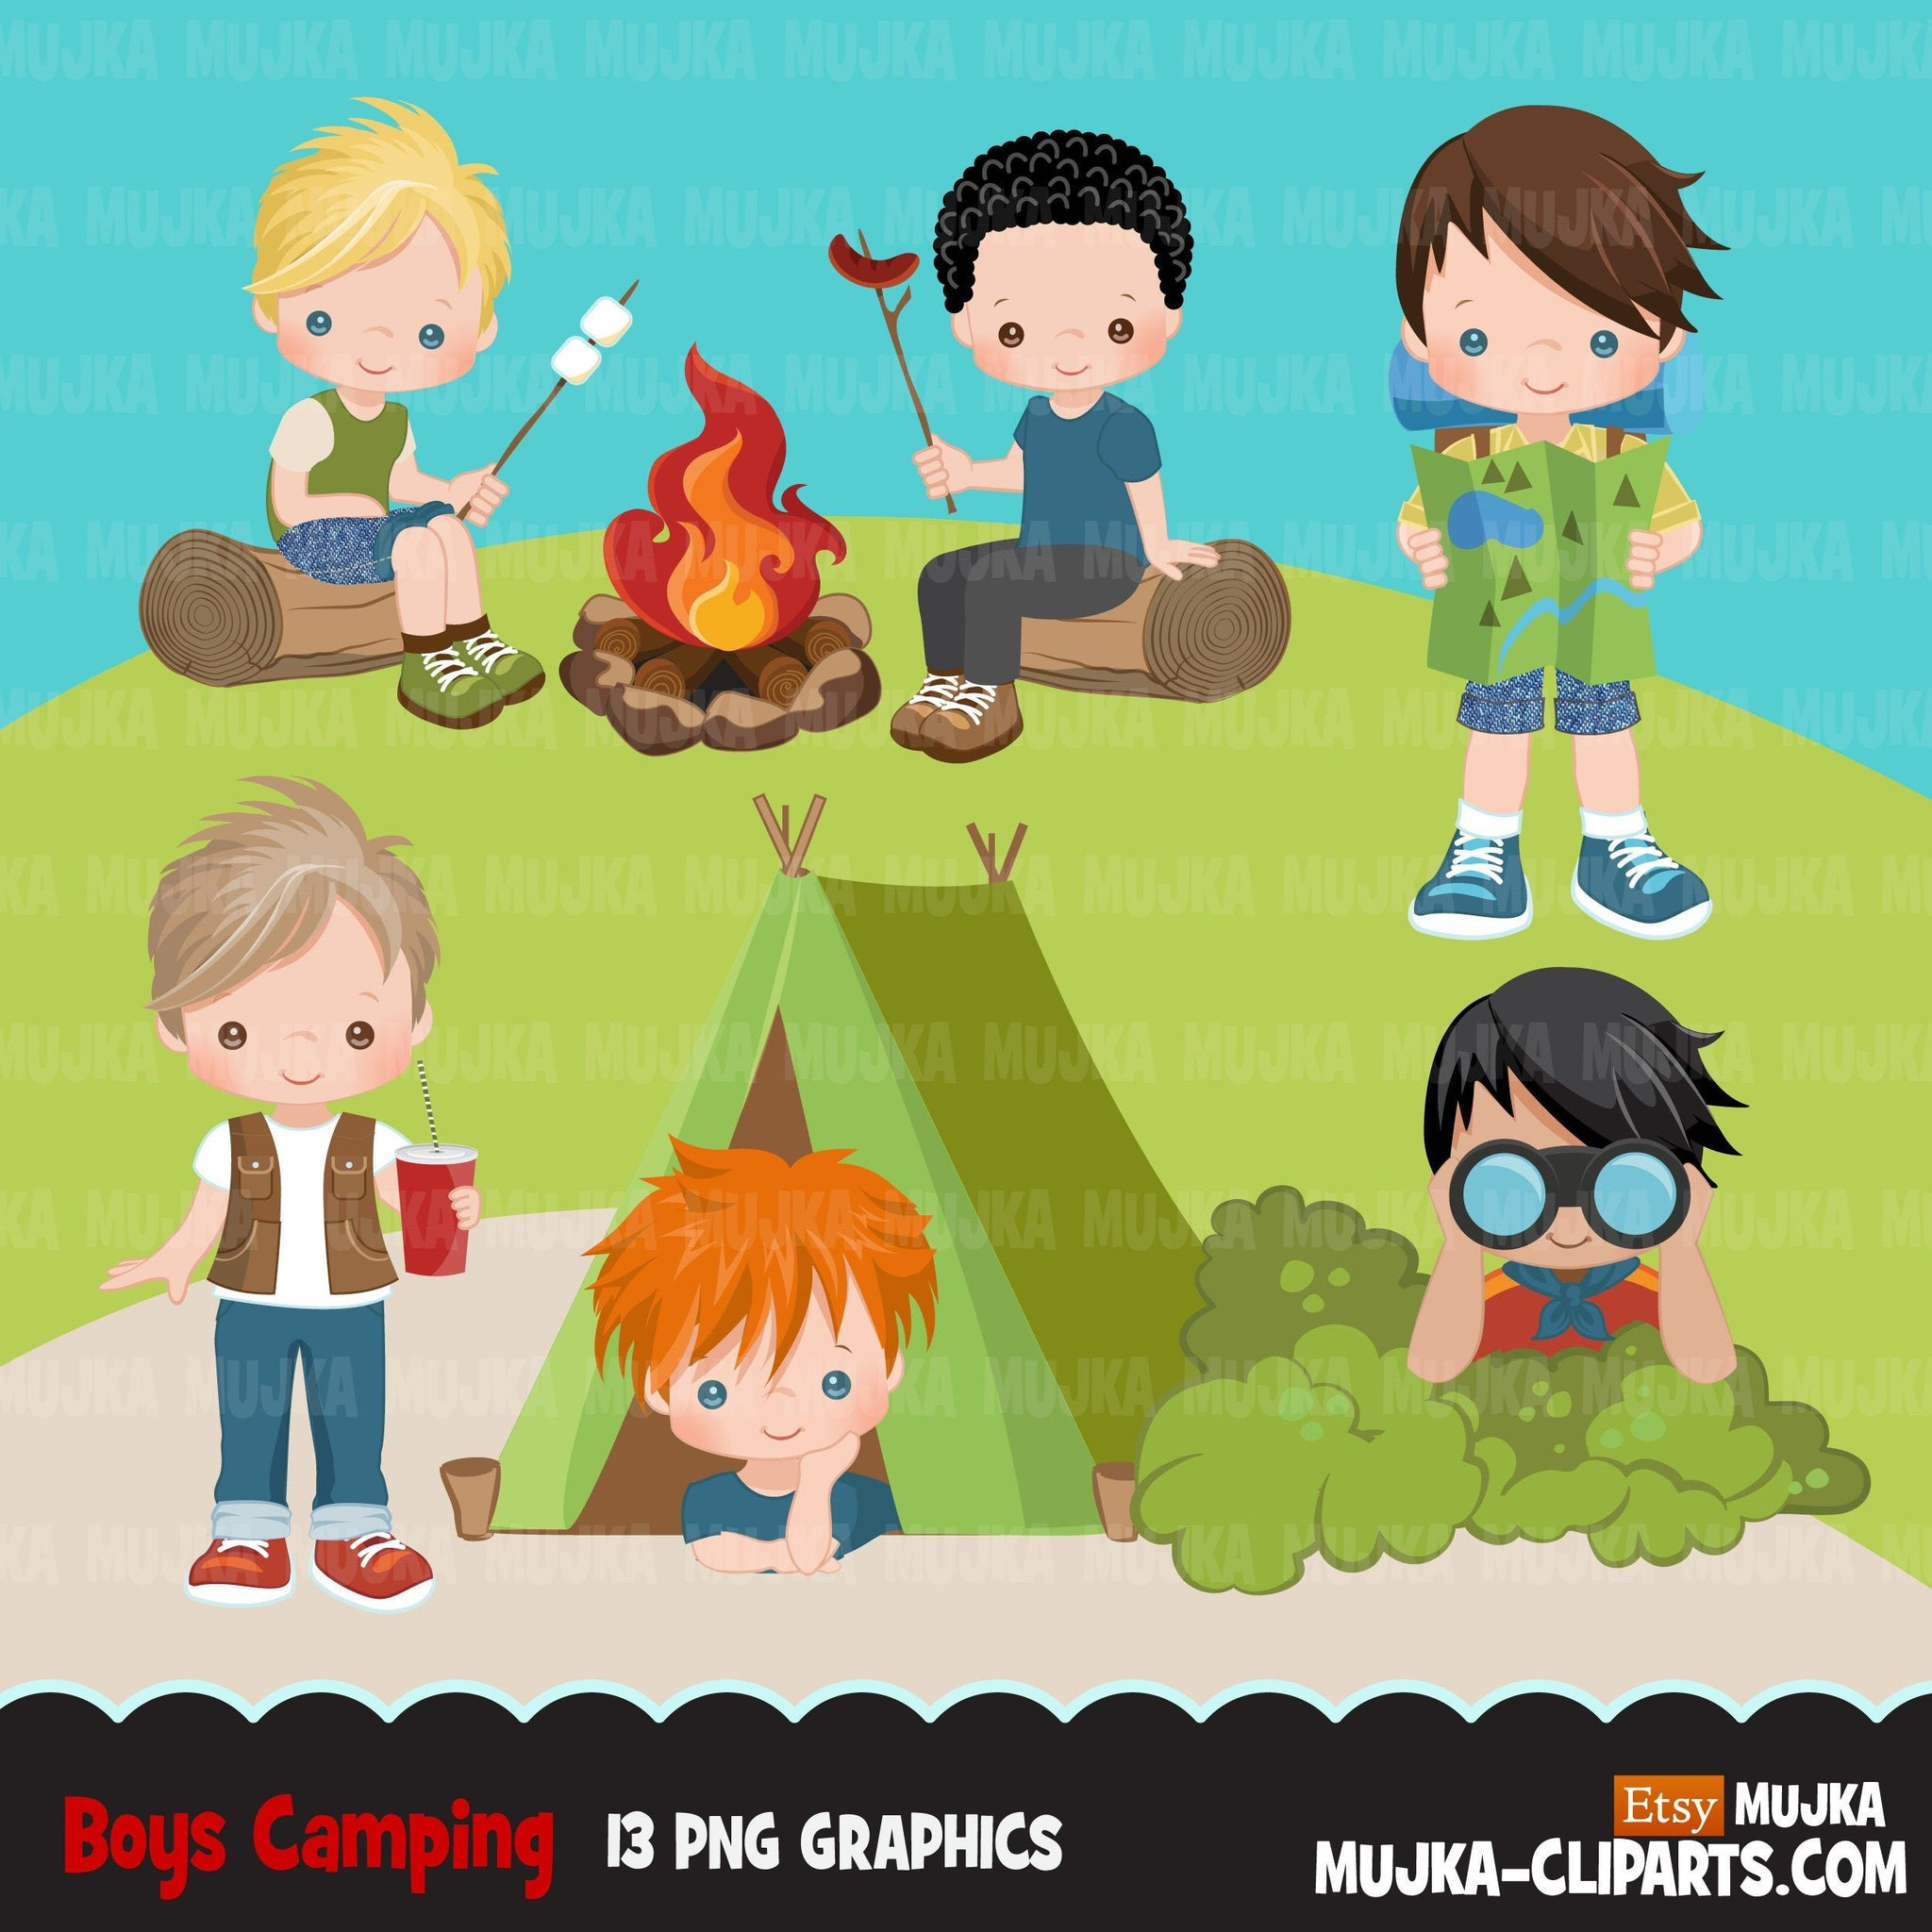 Boy Scouts camping clipart, campground, campfire, tent, outdoor graphics, commercial use Png clip art